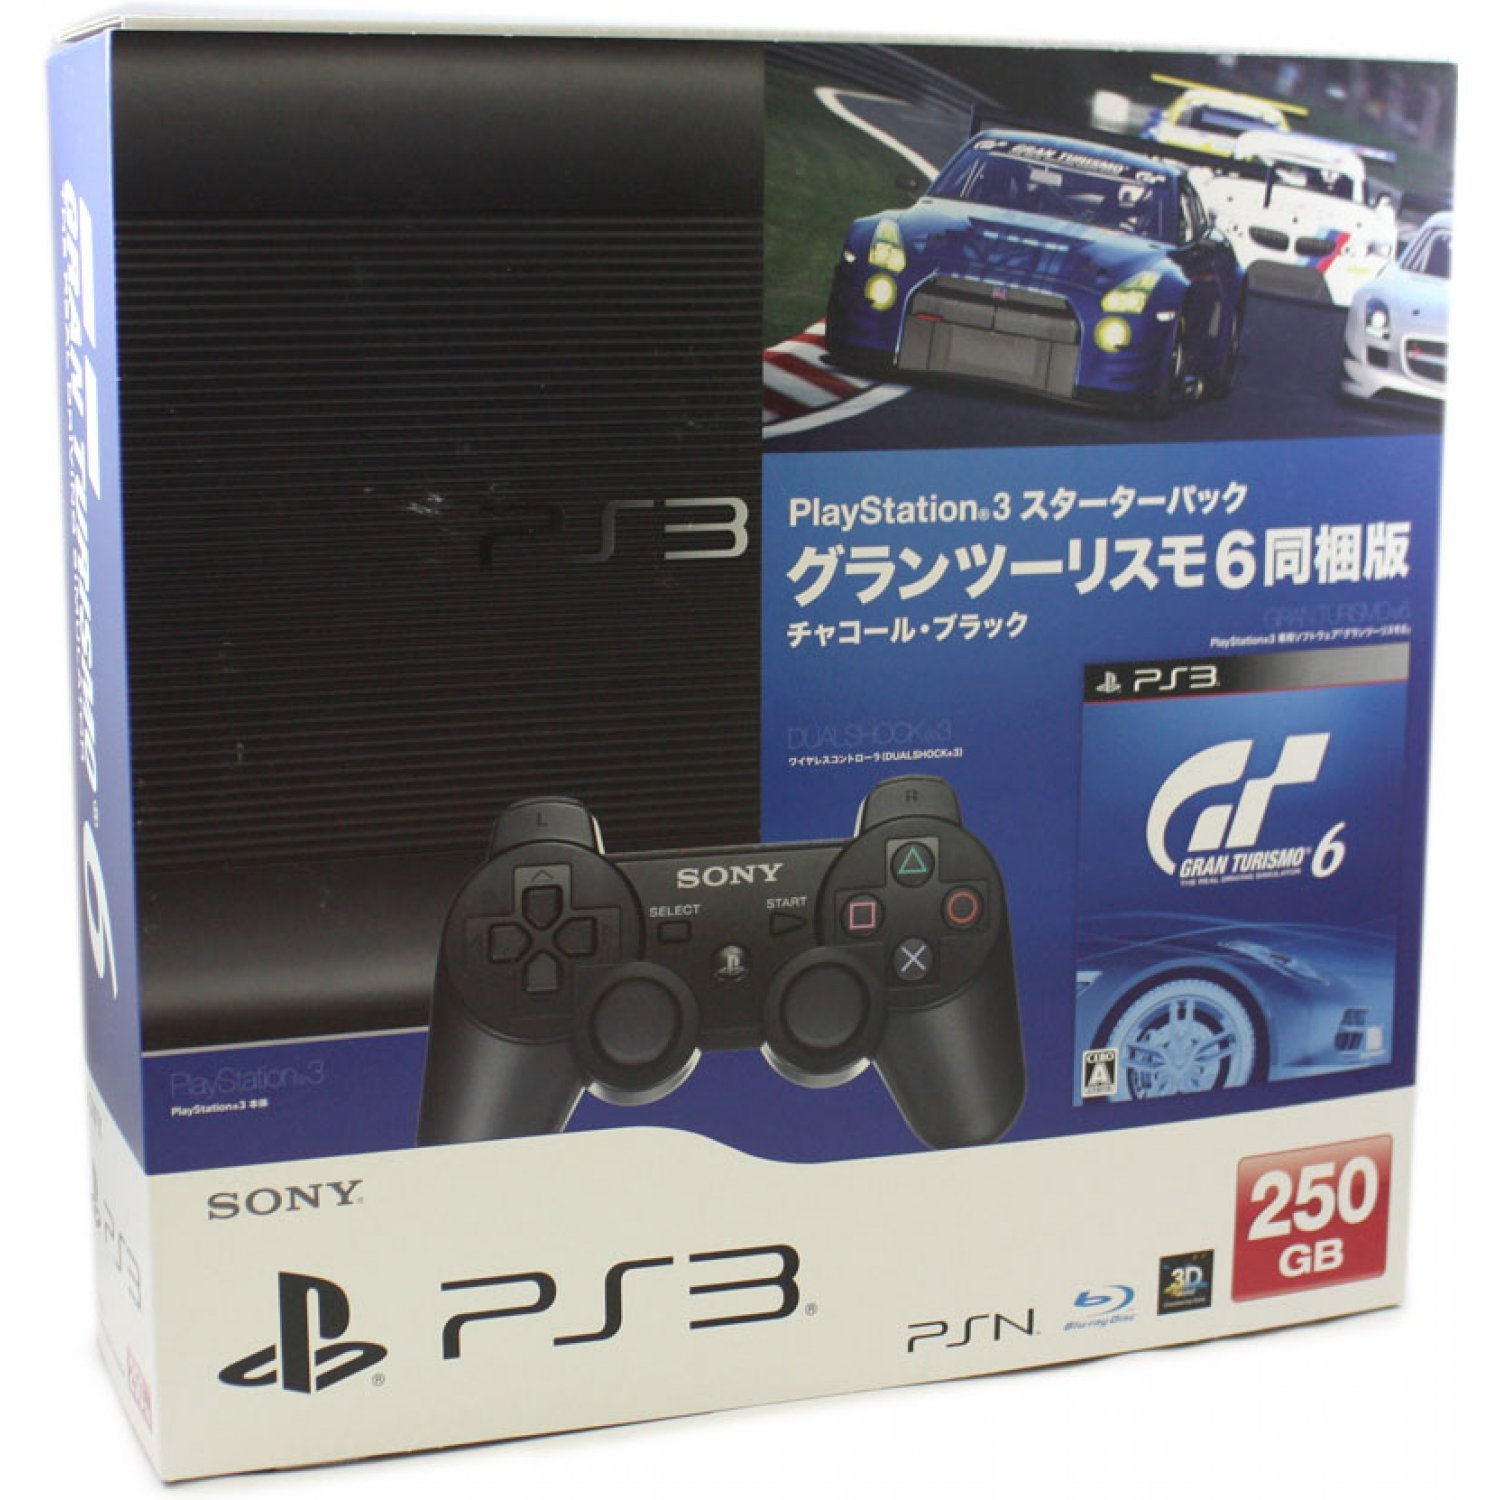 Playstation3 New Slim Console Starter Pack With Gran Turismo 6 Charcoal Black